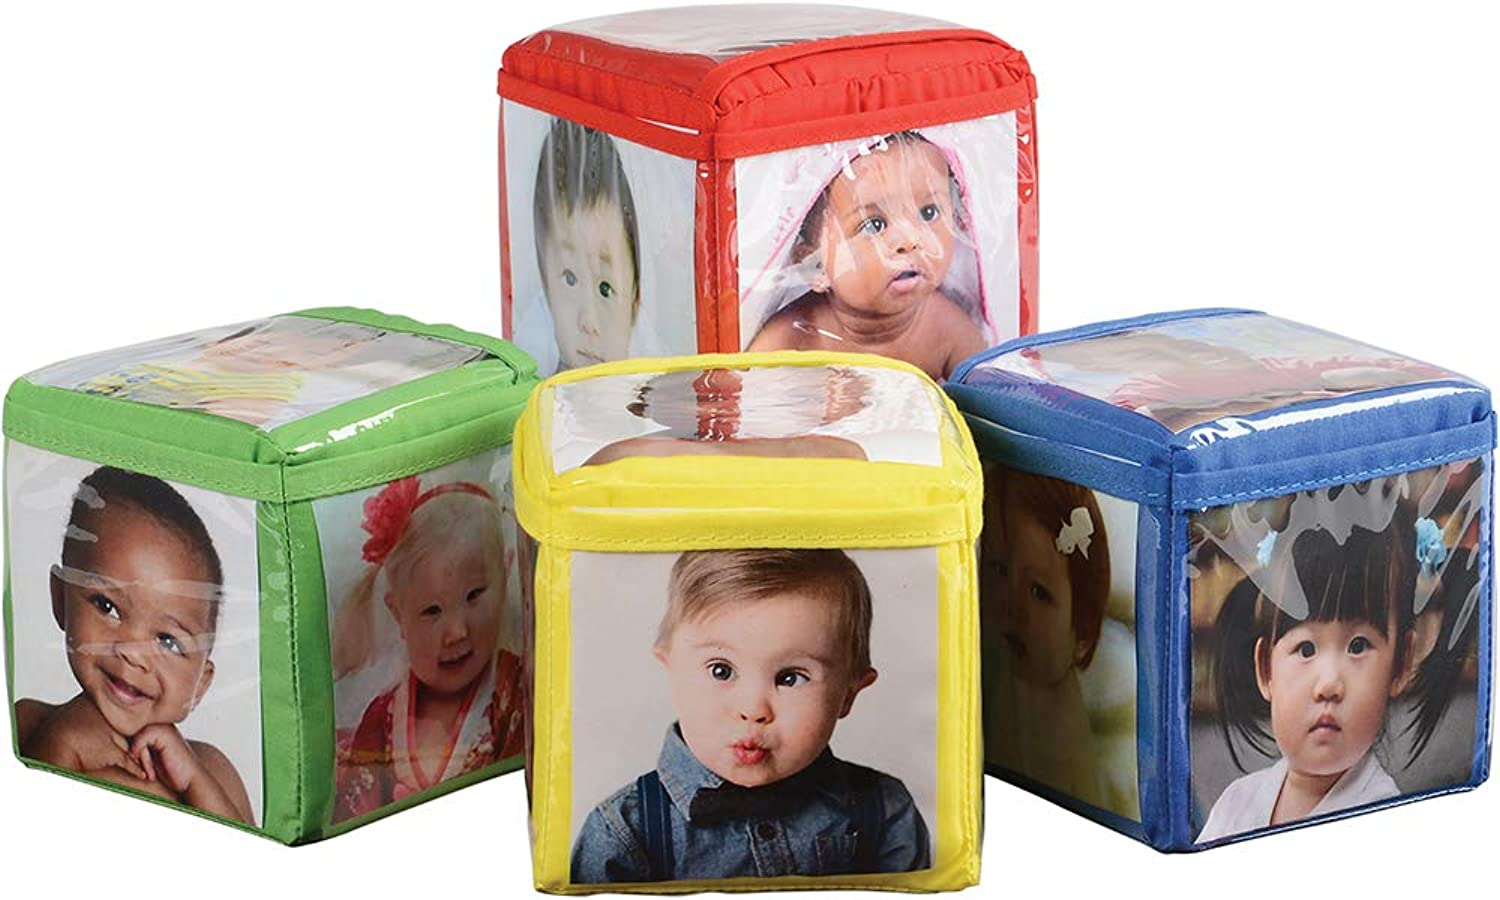 CP Toys Photo Pocket Foam Stacking Blocks  Set of 4 colorful Blocks with 24 Vinyl Photo Pockets to Personalize  Ages 12 Months+